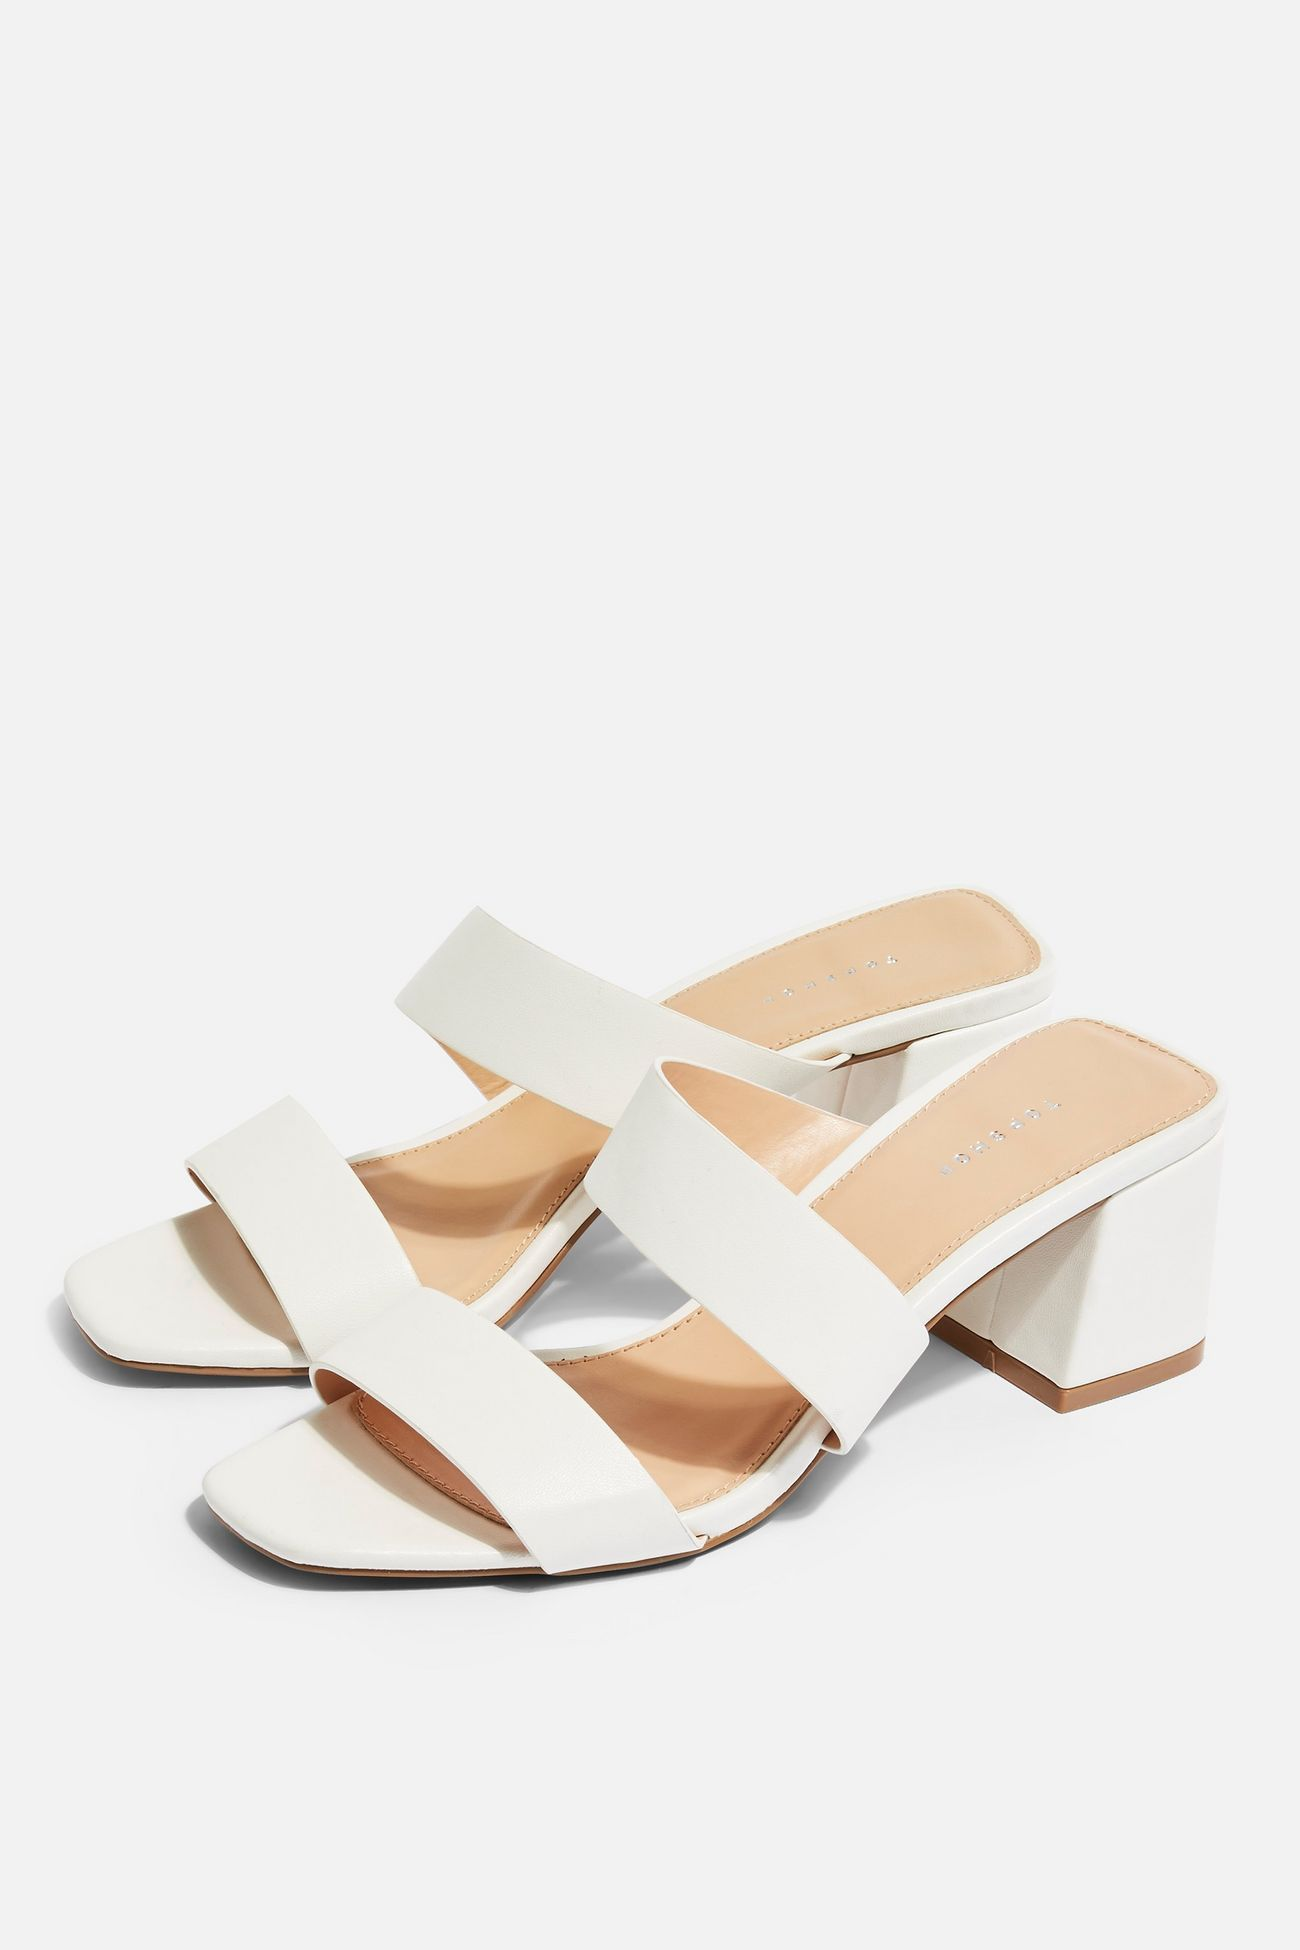 82591760f8 DARLA White Strap Mules | Topshop Shoes Heels, Flats, Sandals, White Now,